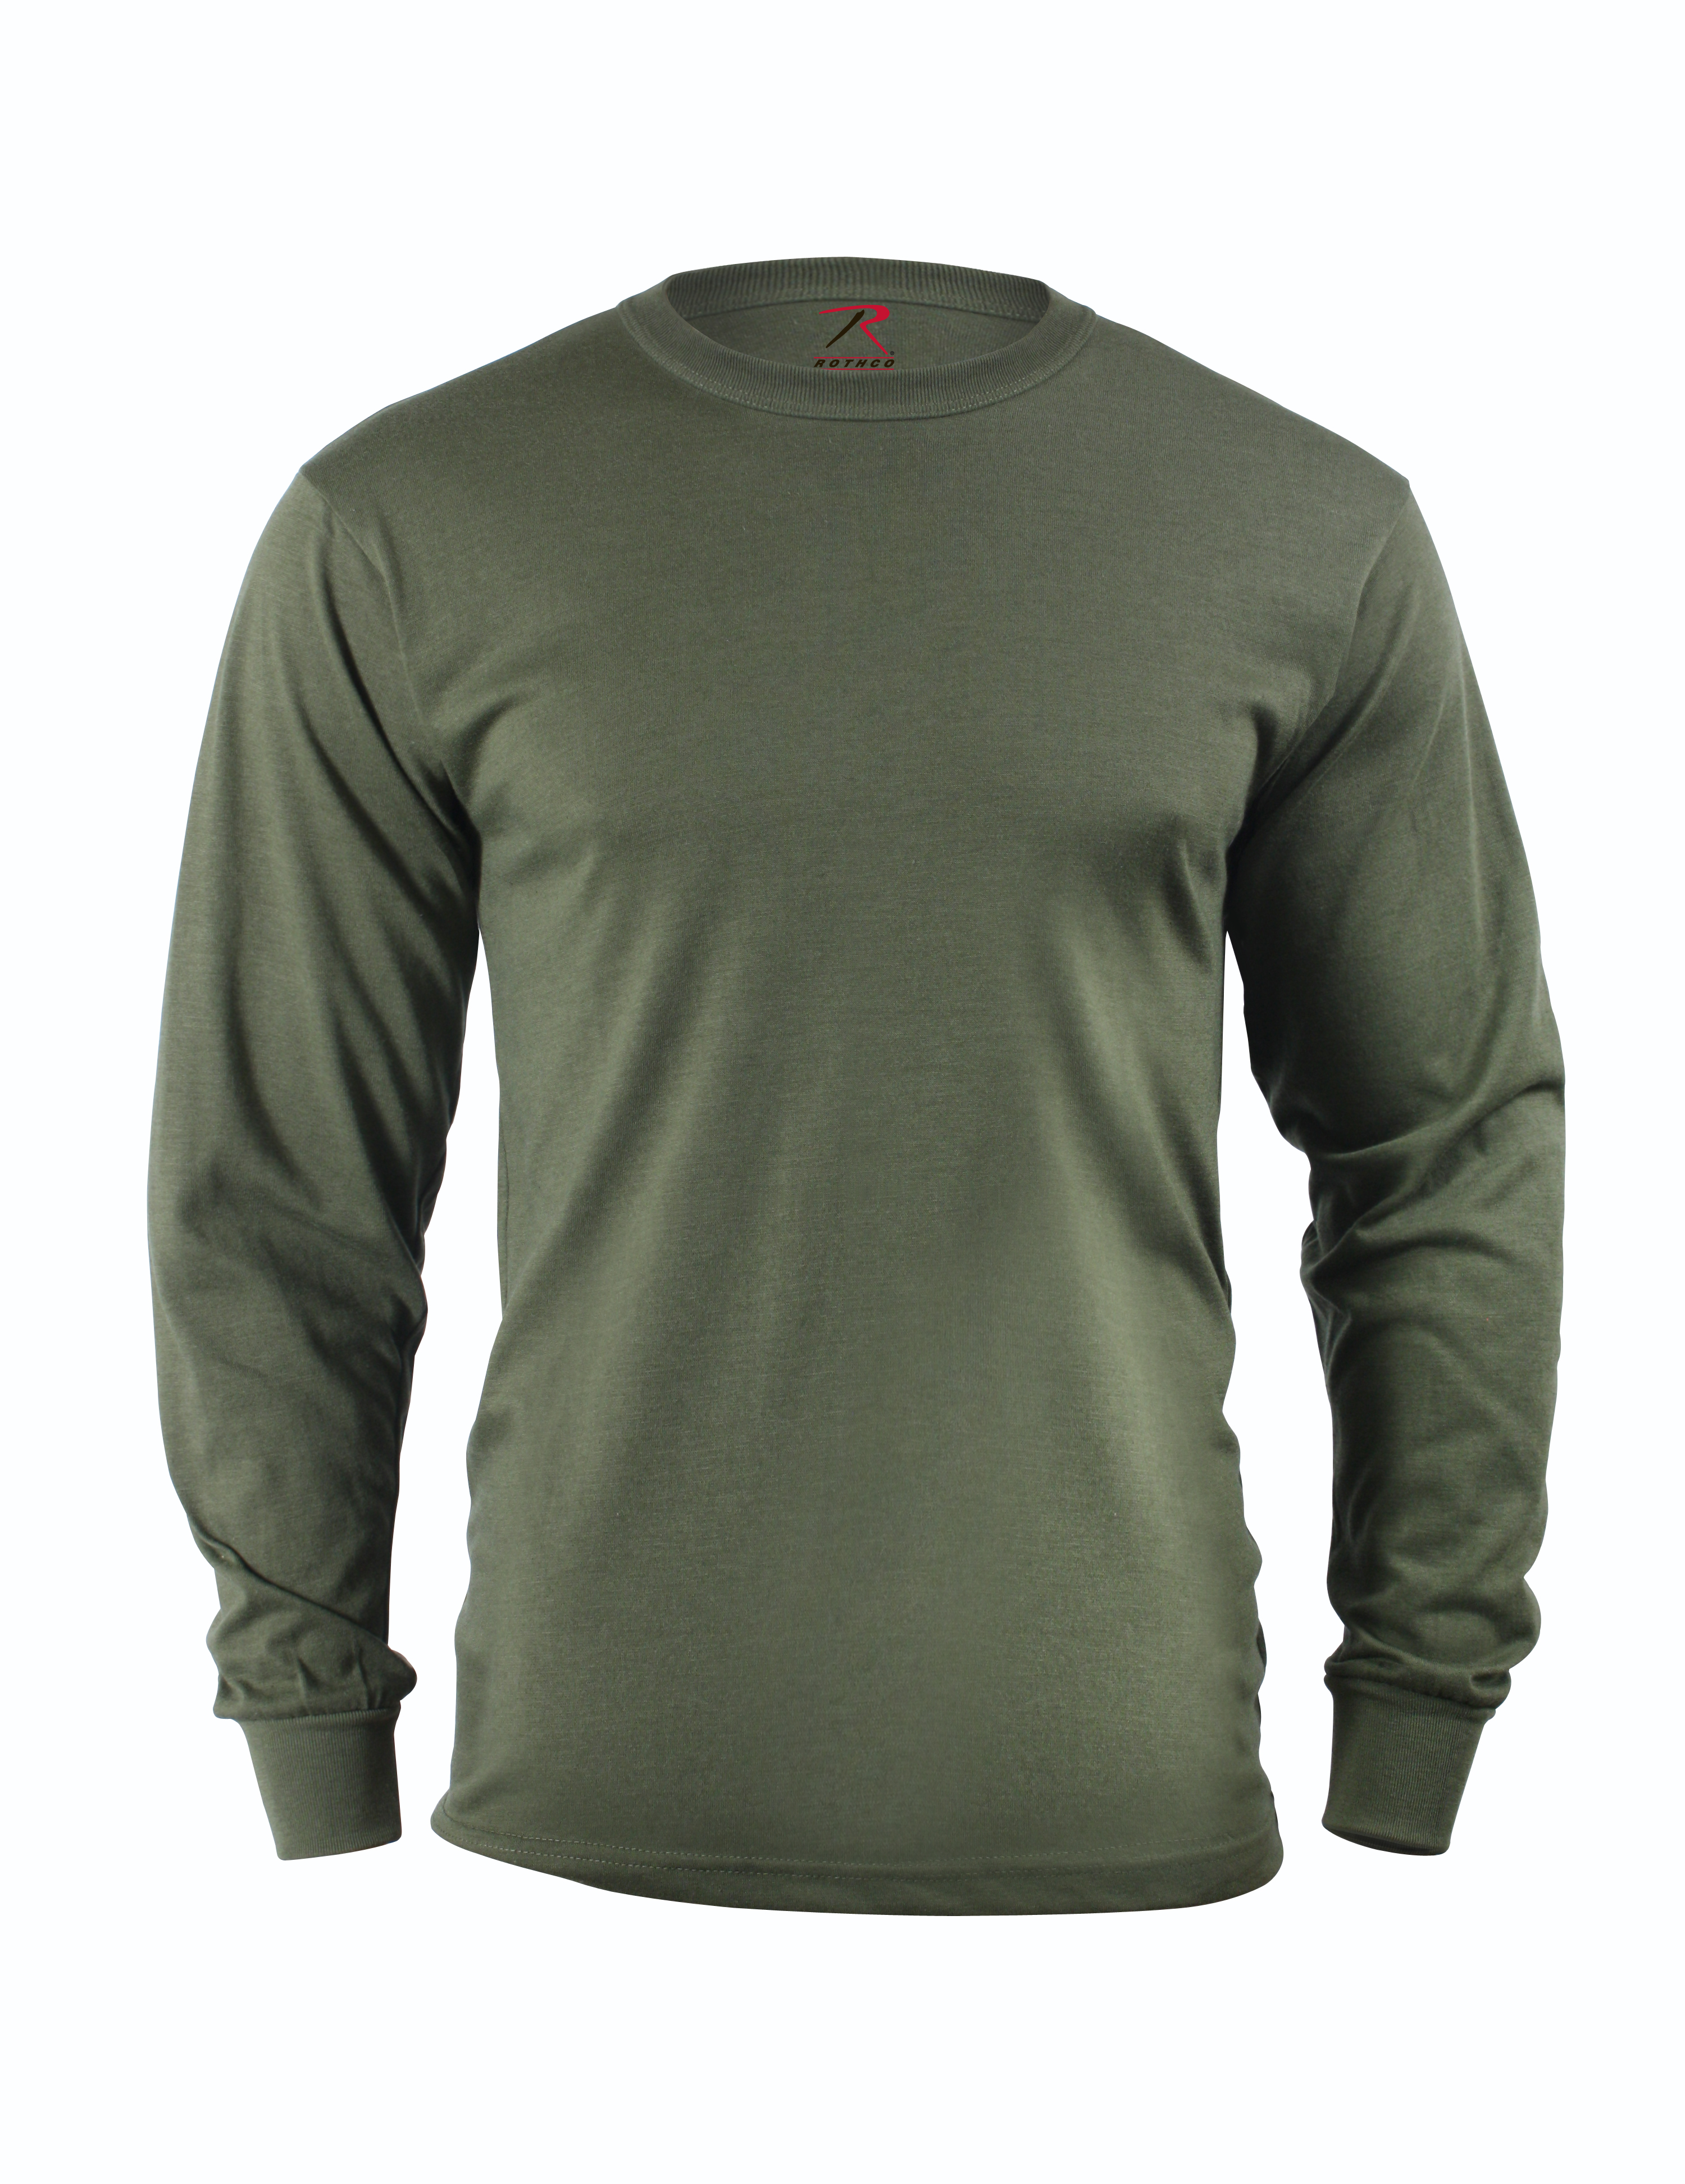 bdbbf7444ad Details about Rothco 60118 Long Sleeve Solid Poly Cotton T-Shirt - Olive  Drab